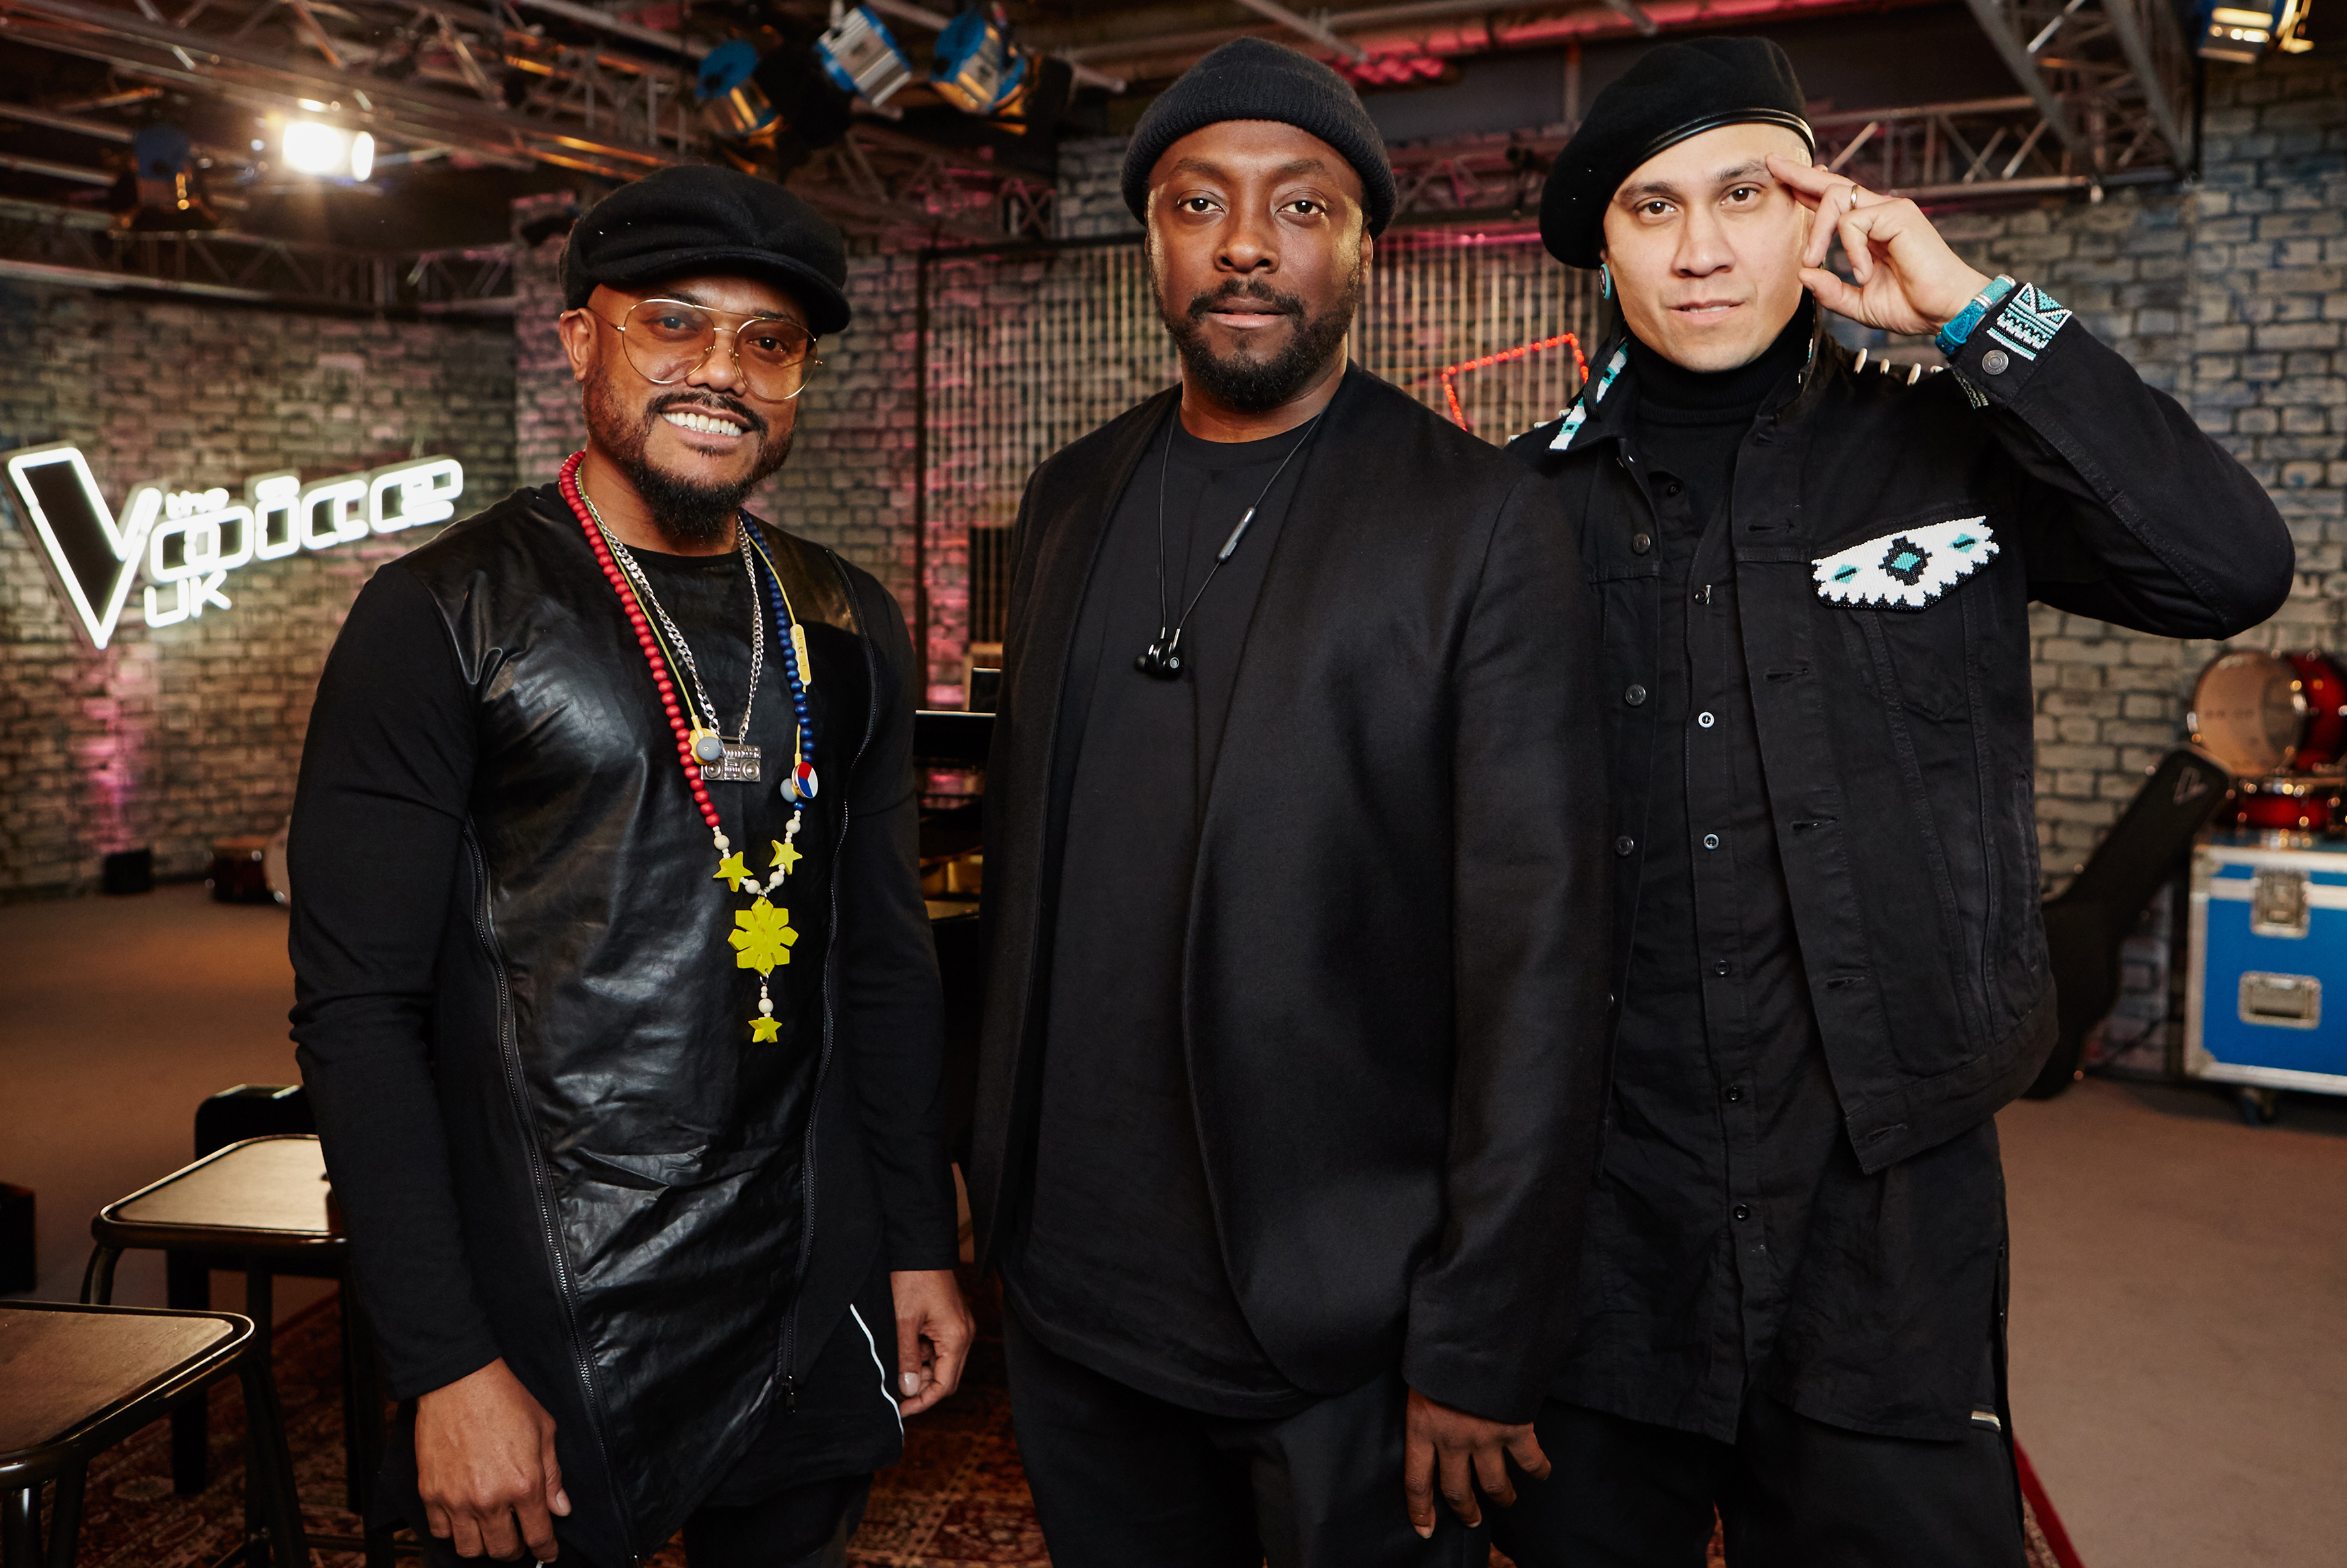 Black Eyed Peas stars apl.de.ap and Taboo with will.i.am (ITV)